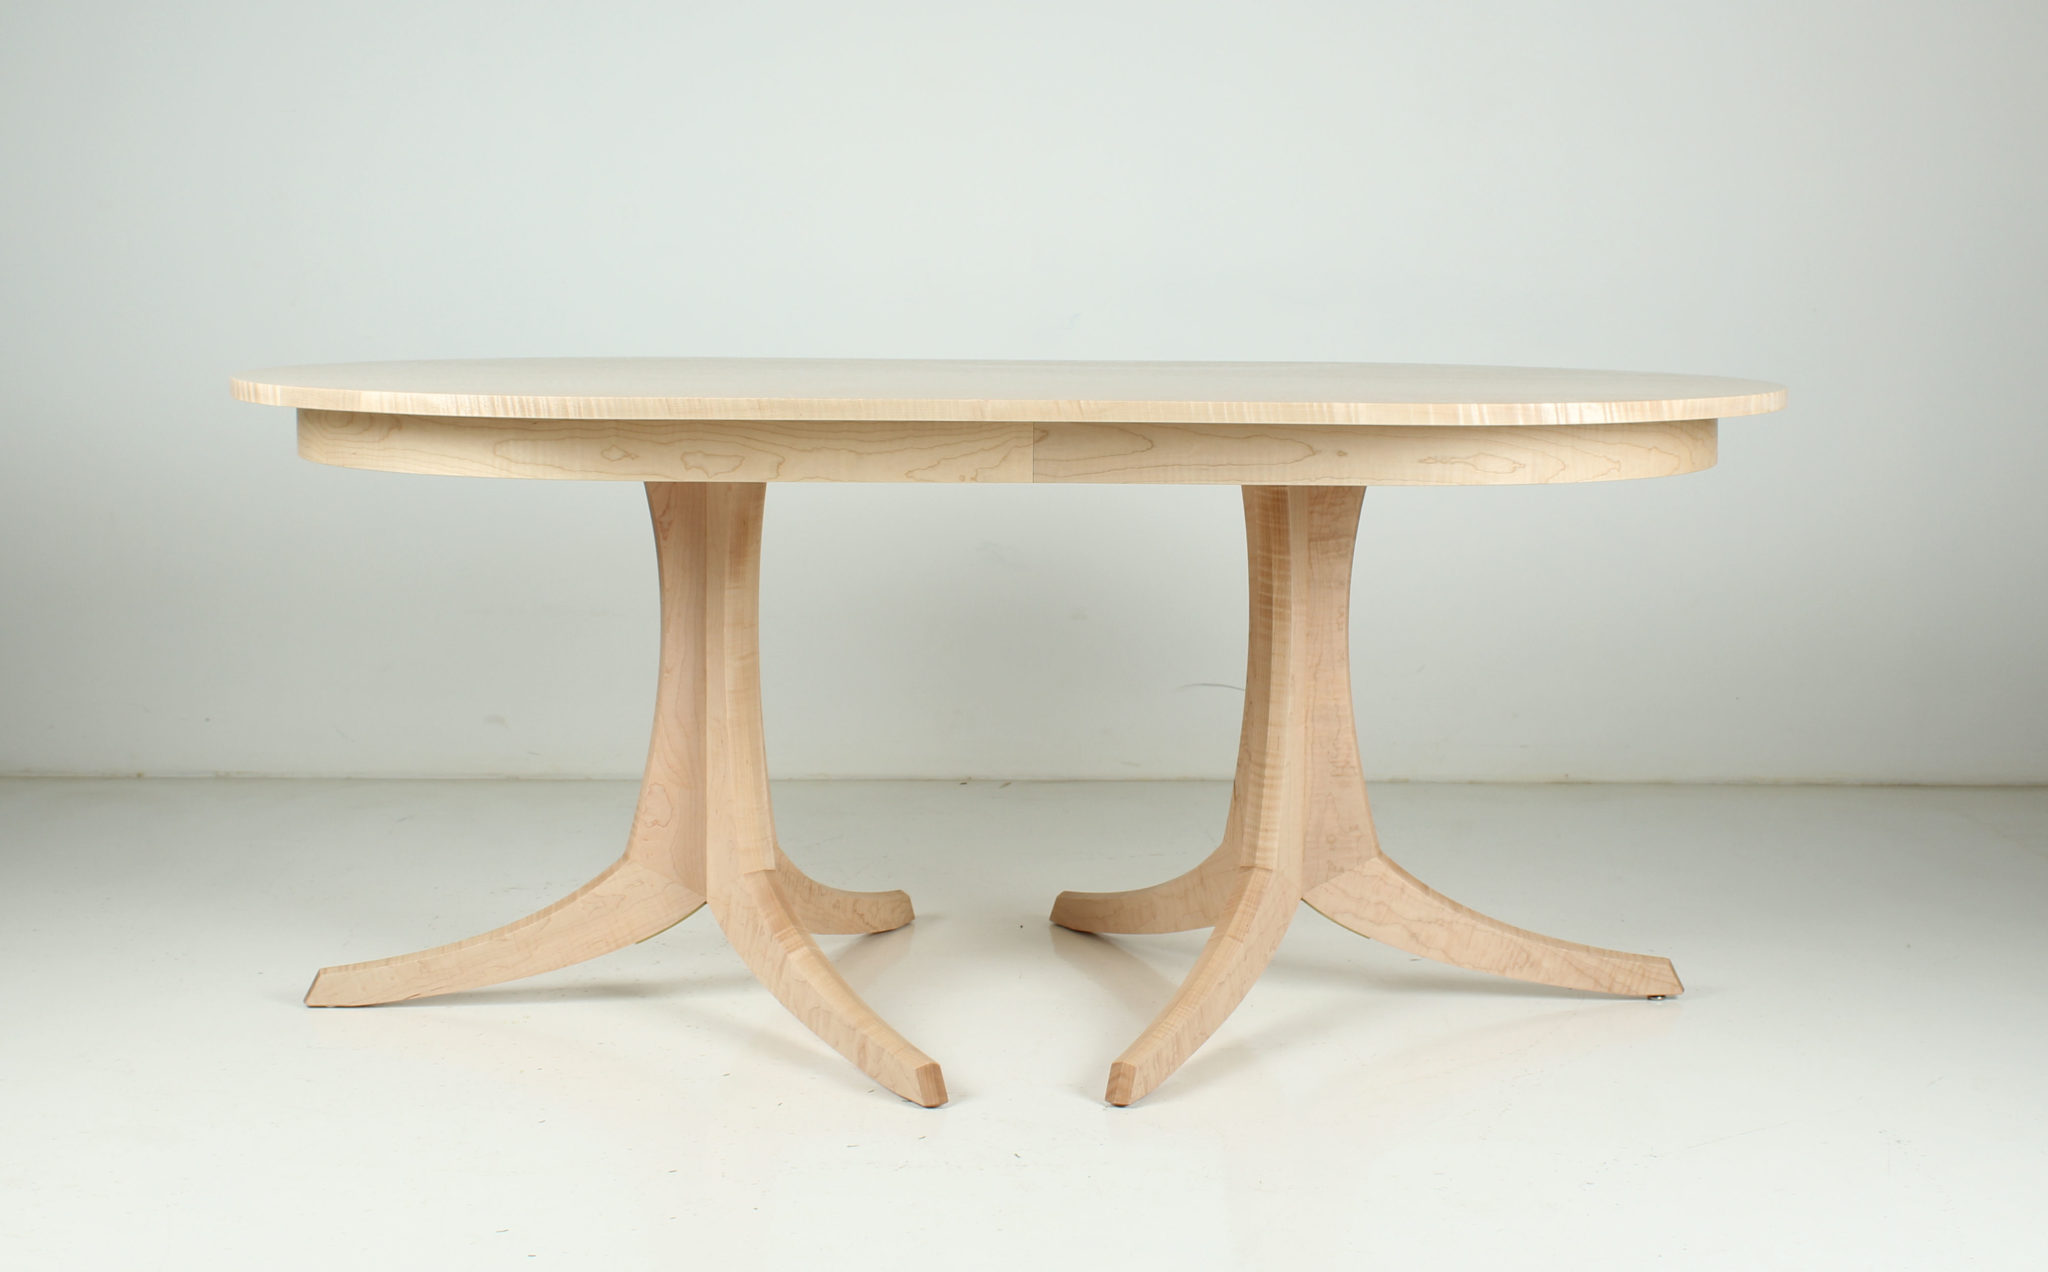 Georgetown Table Double Pedestal OUTLET Thos Moser : 90 5312 42 x 72 solid top fig maple from www.thosmoser.com size 2048 x 1272 jpeg 120kB